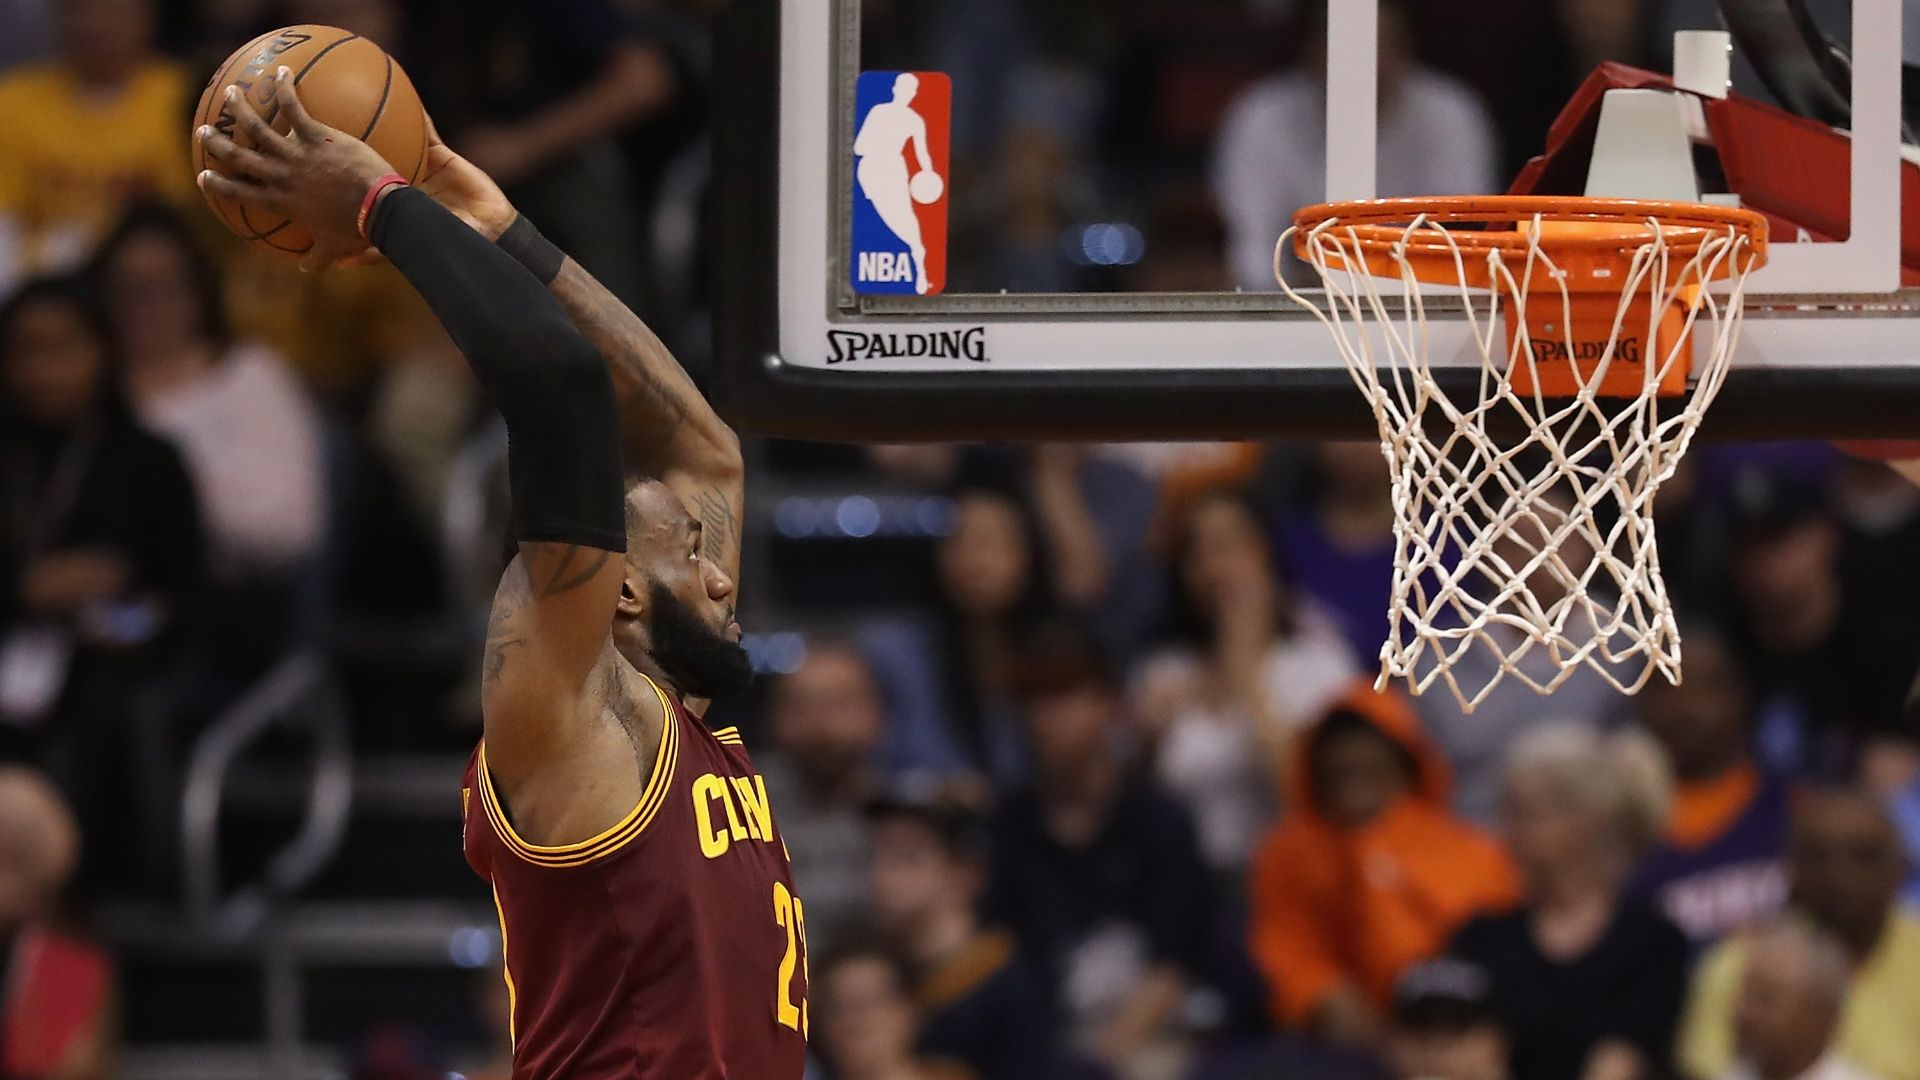 Best LeBron slams of all time